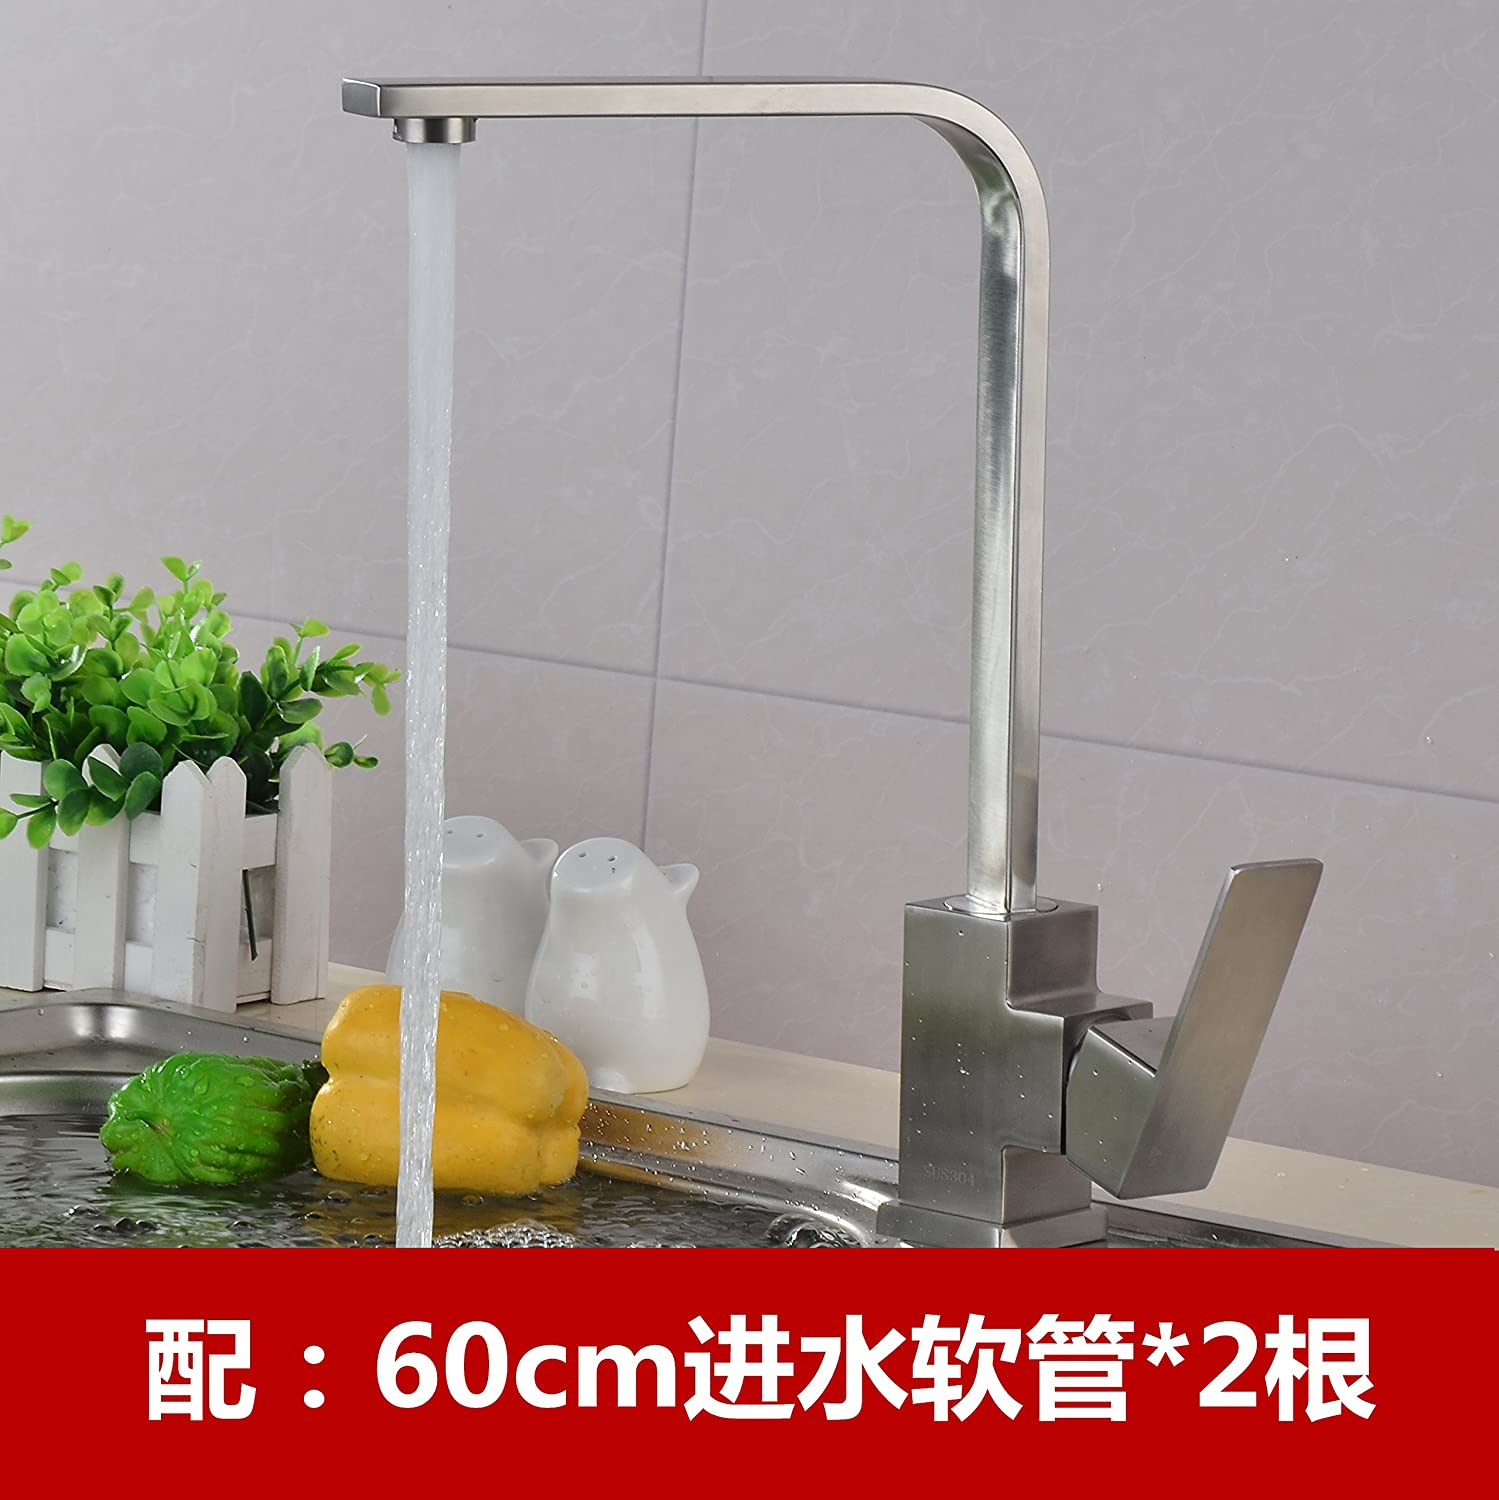 Hlluya Professional Sink Mixer 304 Stainless Steel kitchen faucet hot and cold dish washing basin redating kitchen faucet stainless steel water tank water dragon, square +60cm tap water inlet hose